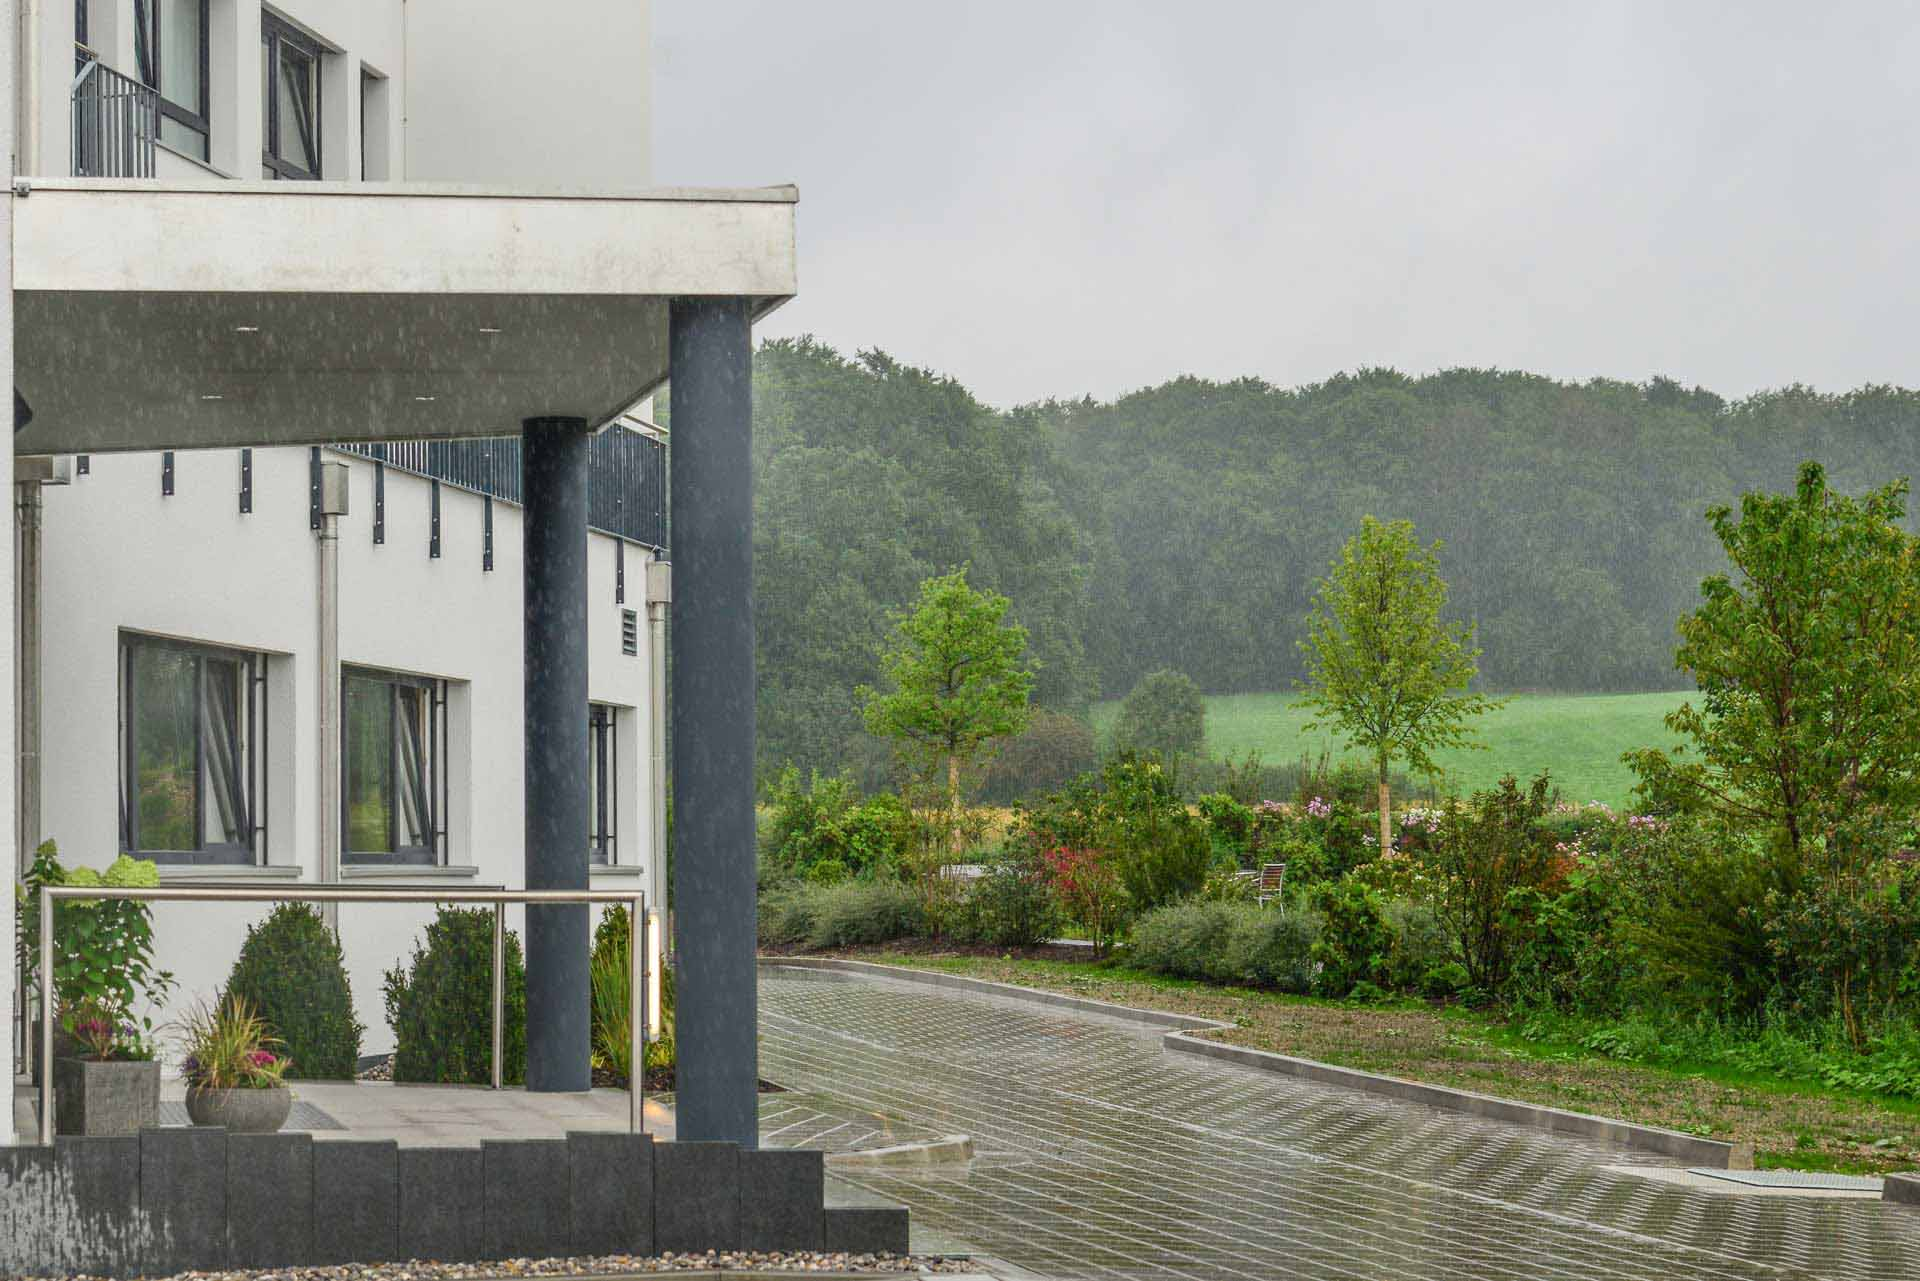 Hotel Ammersee 1